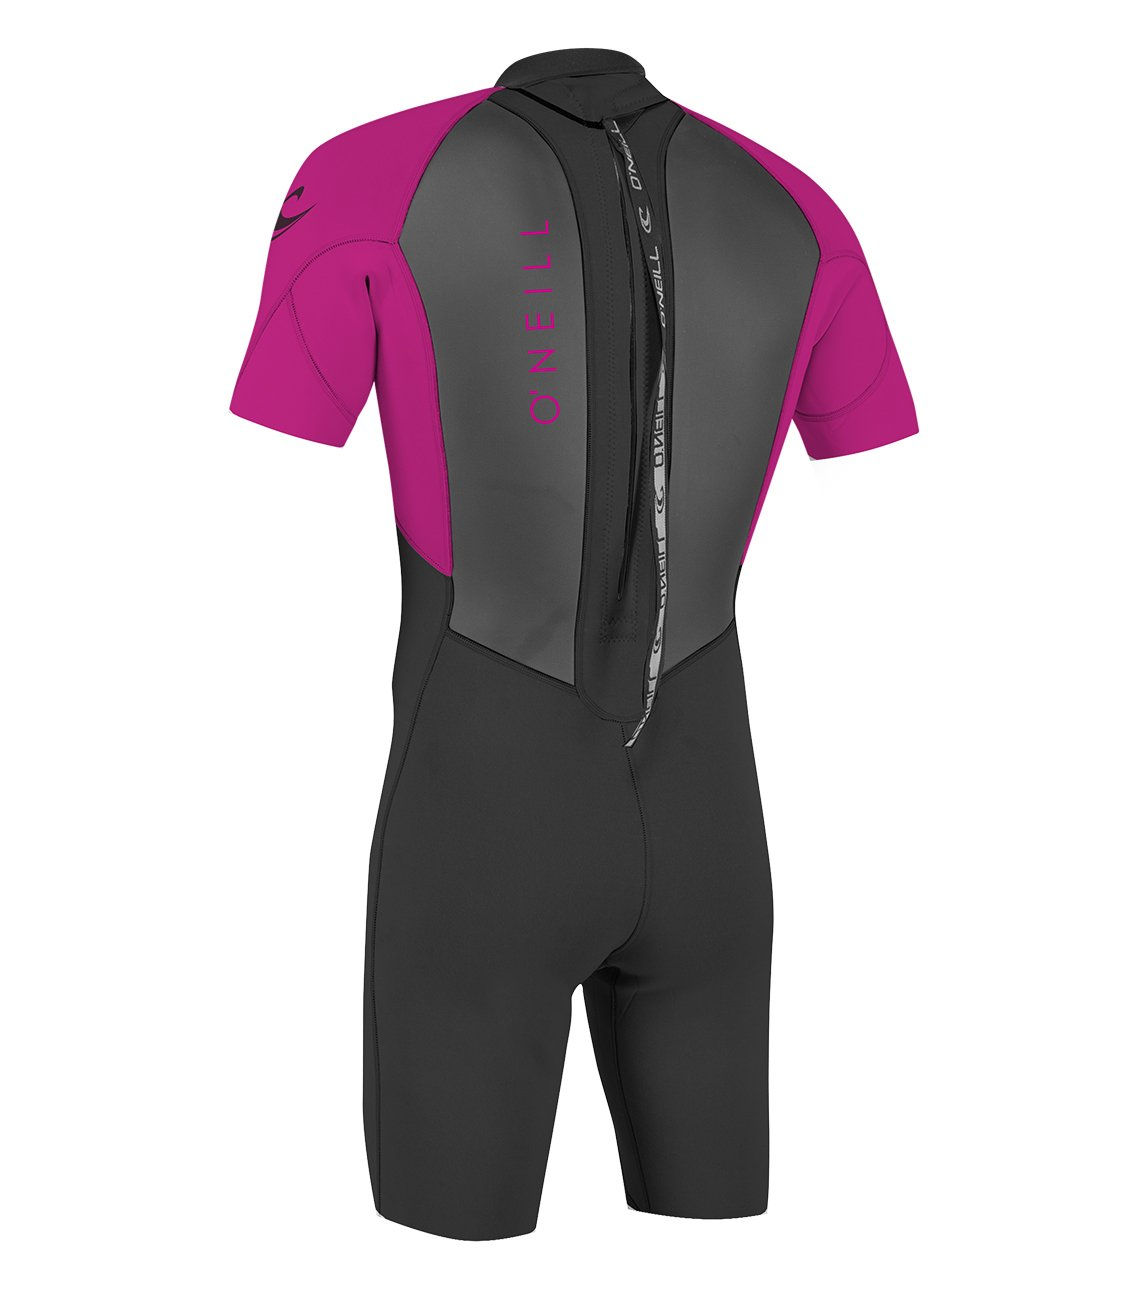 O'Neill Youth Reactor-2 2mm Back Zip Short Sleeve Spring Wetsuit, Black/Berry, 4 by O'Neill Wetsuits (Image #2)